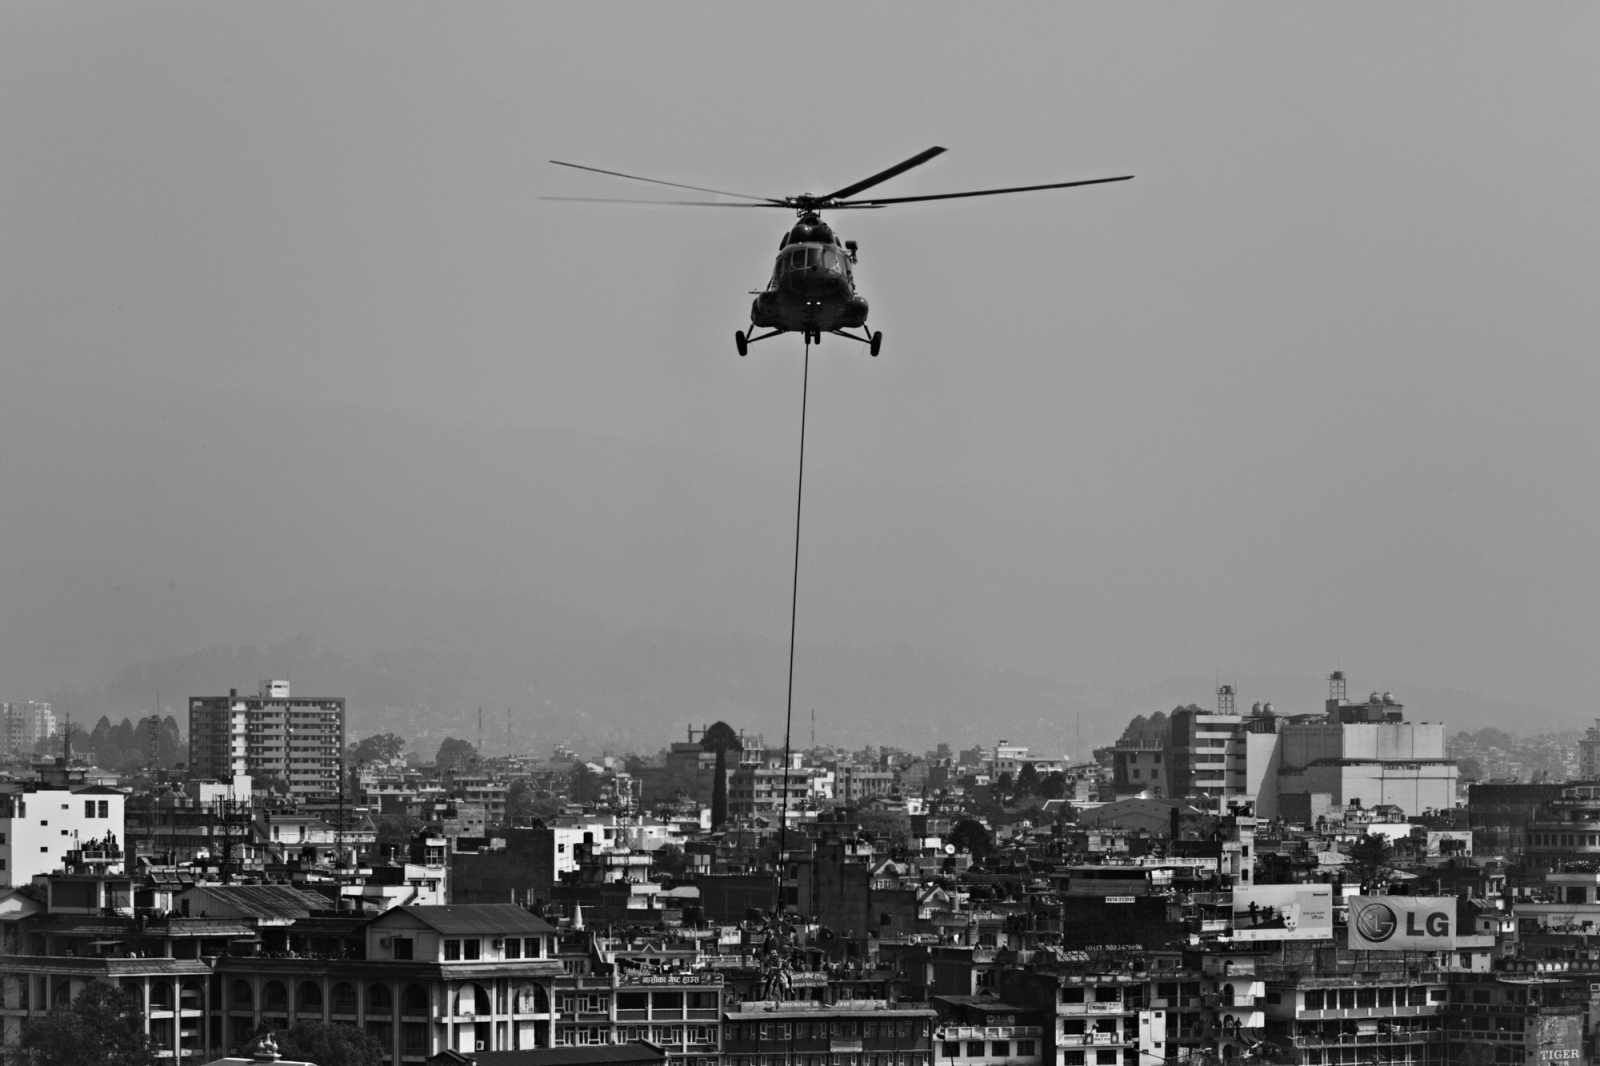 The Nepali military demonstrates their ability to airlift wounded soldiers out of areas where a helicopter cannot land.